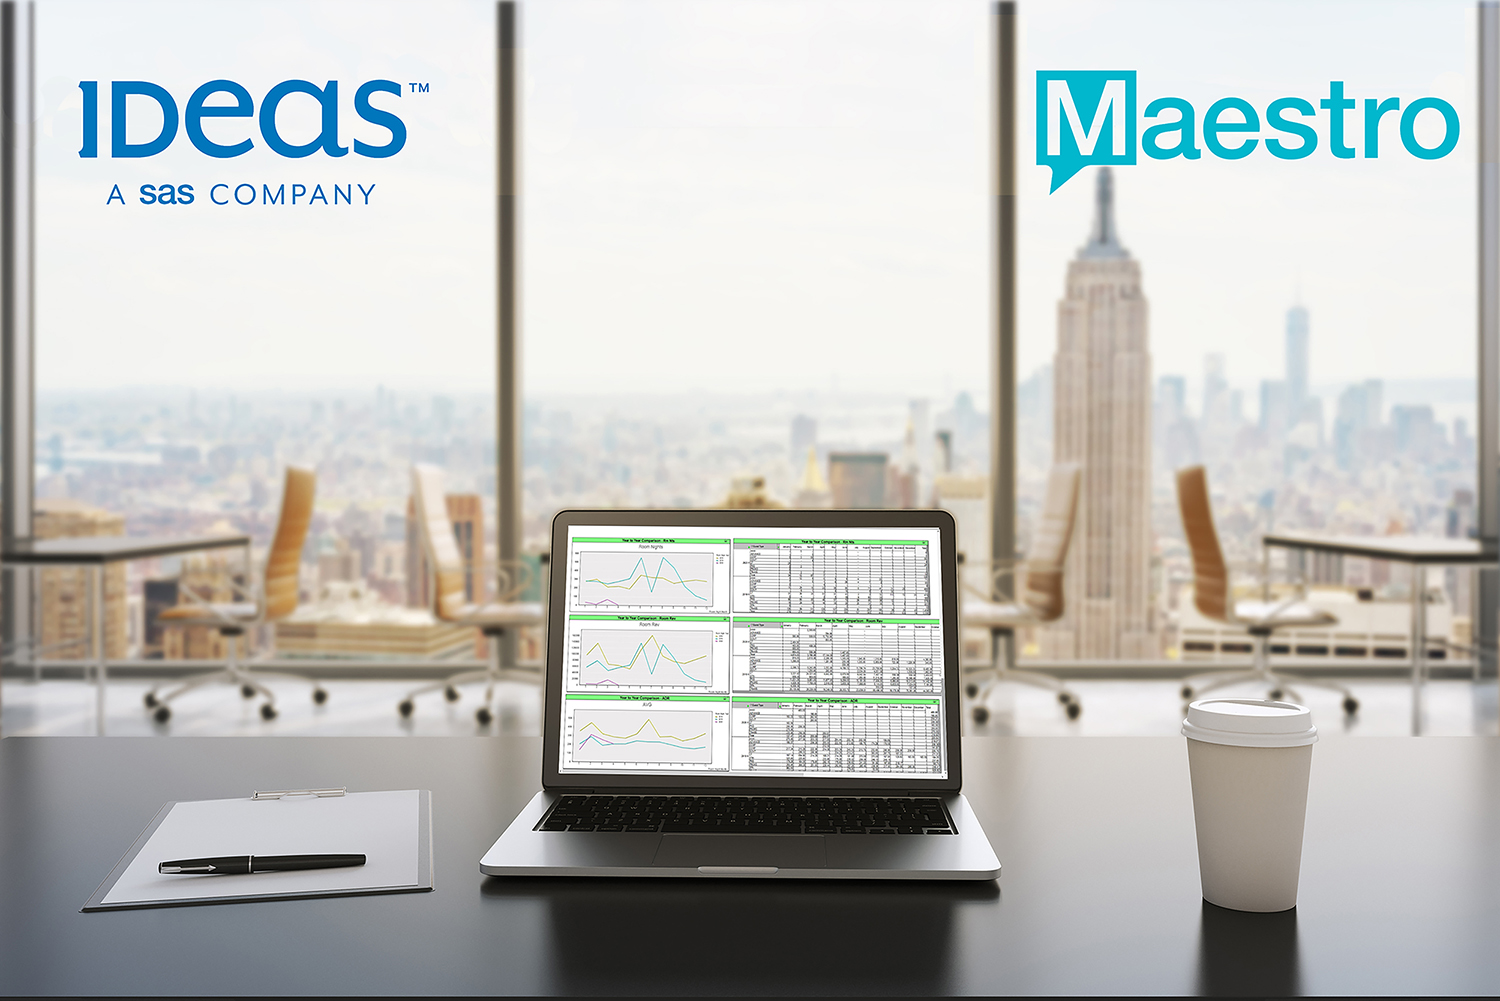 ideas 1 - Maestro PMS – IDeaS G3 RMS Interface Delivers Marked Increase in Revenue to Hotel Operators - Innovative Property Management Software Solutions Powering Hotels, Resorts & Multi‑Property Groups.